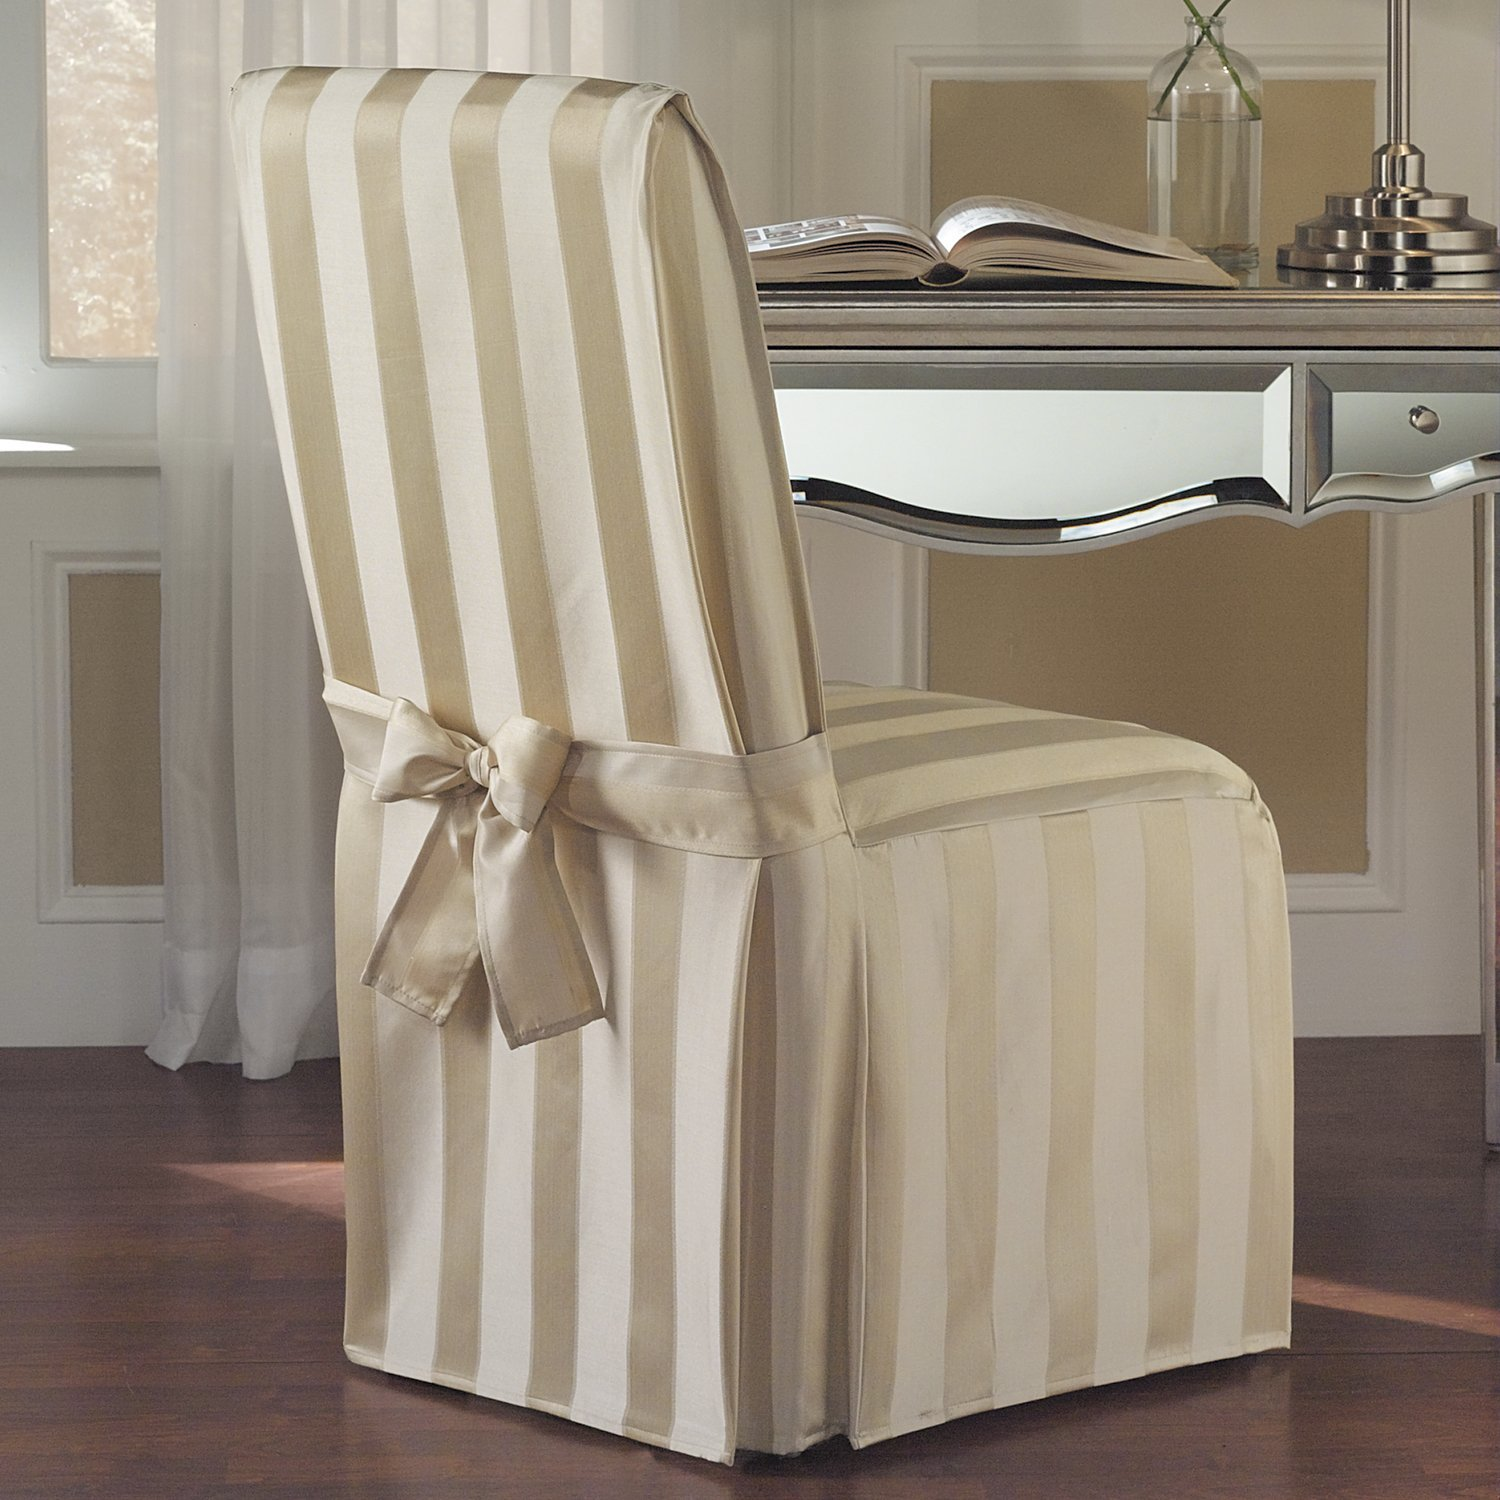 Chairs Covers Top 10 Best Dining Room Chair Covers For Sale In 2015 Review